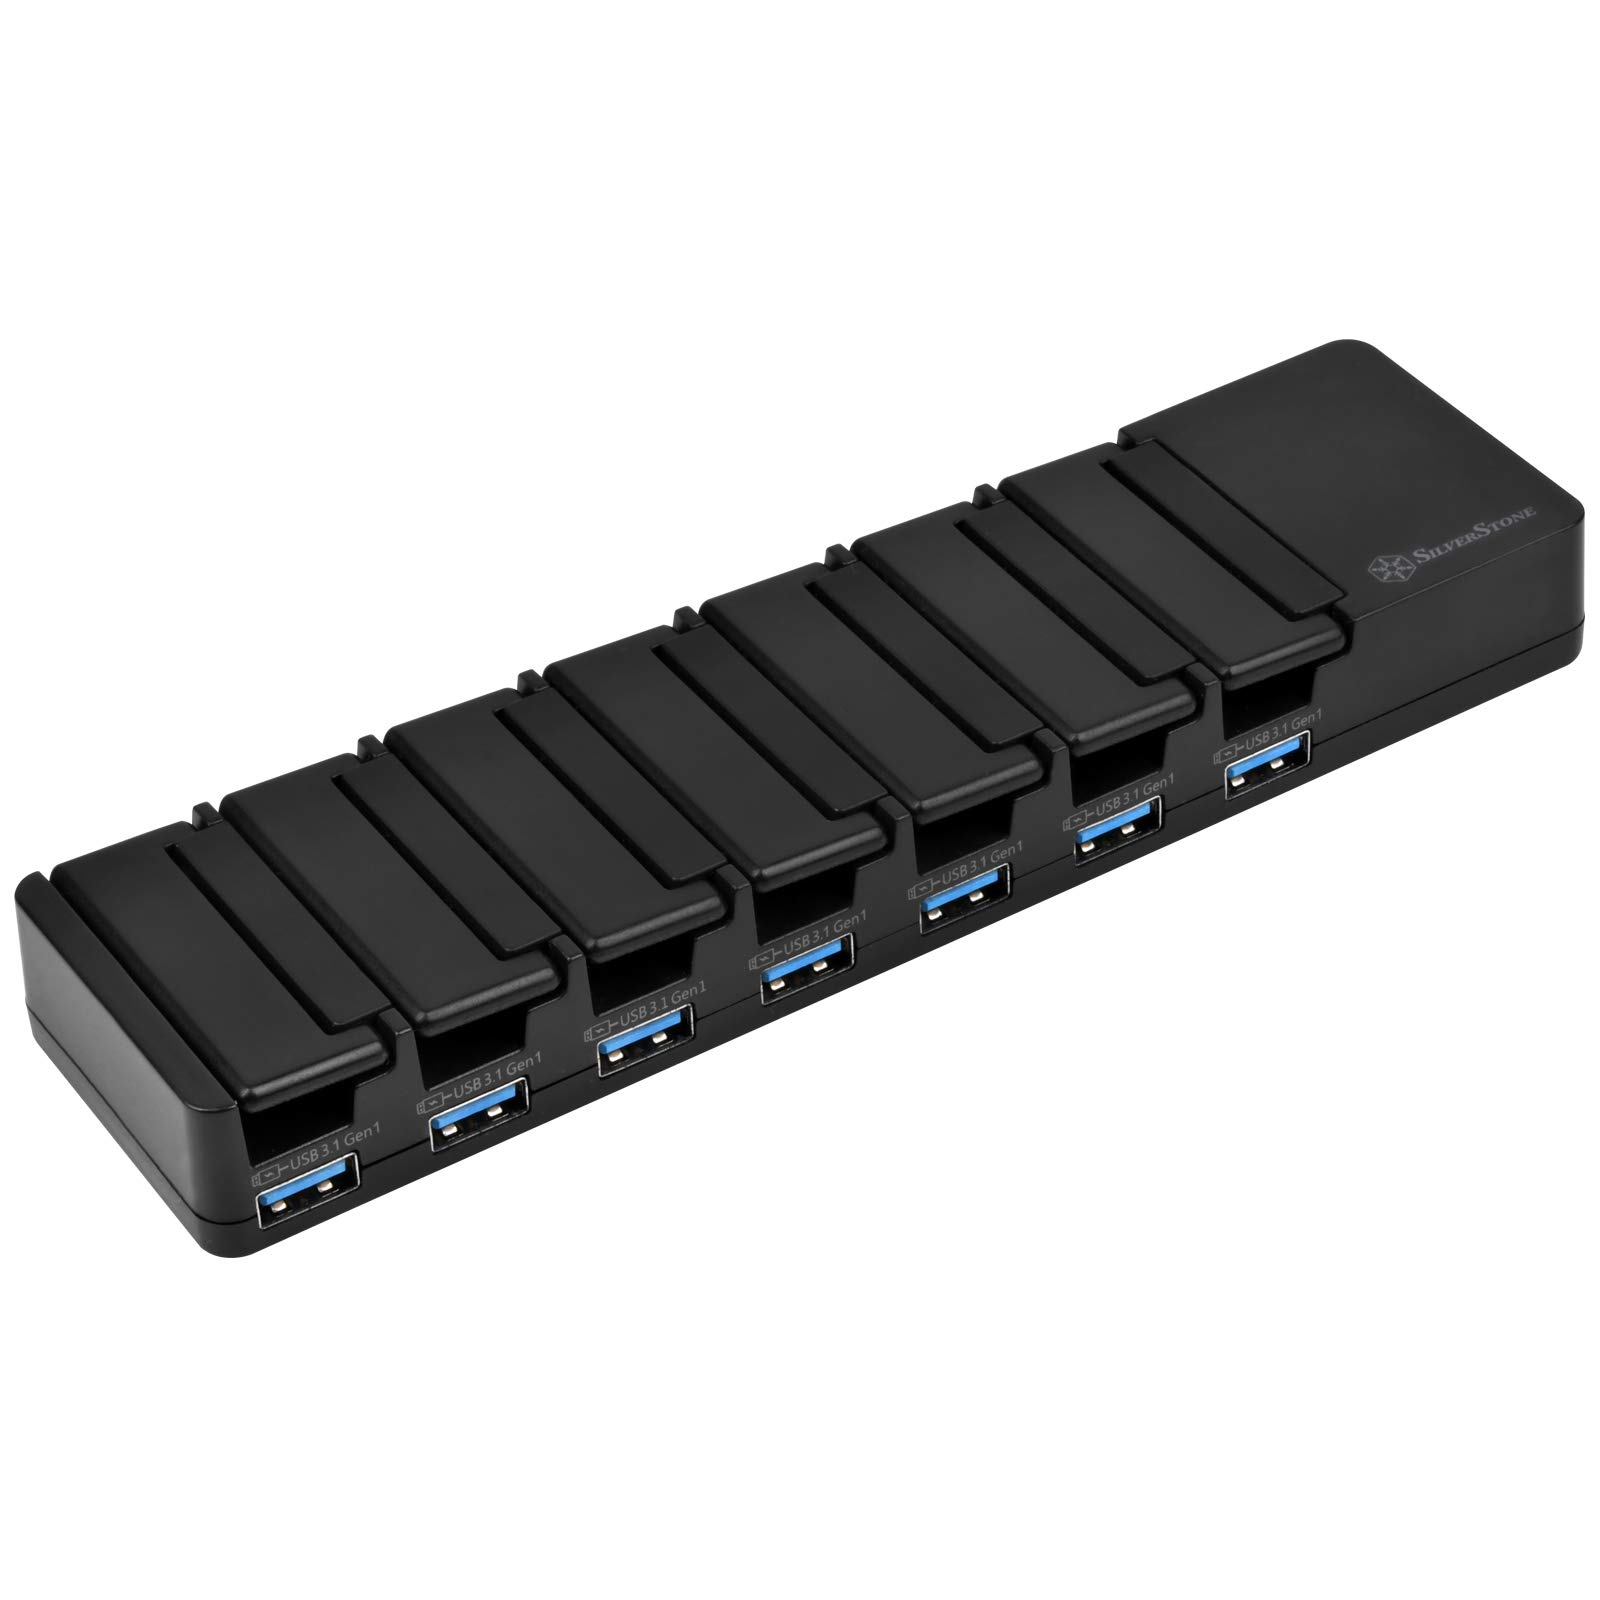 SilverStone Technology SST-UC03B-PRO 7 Port USB 3.1 Data Transfer and Charging Station with 5V/2.4A Fast Charging UC03B-Pro